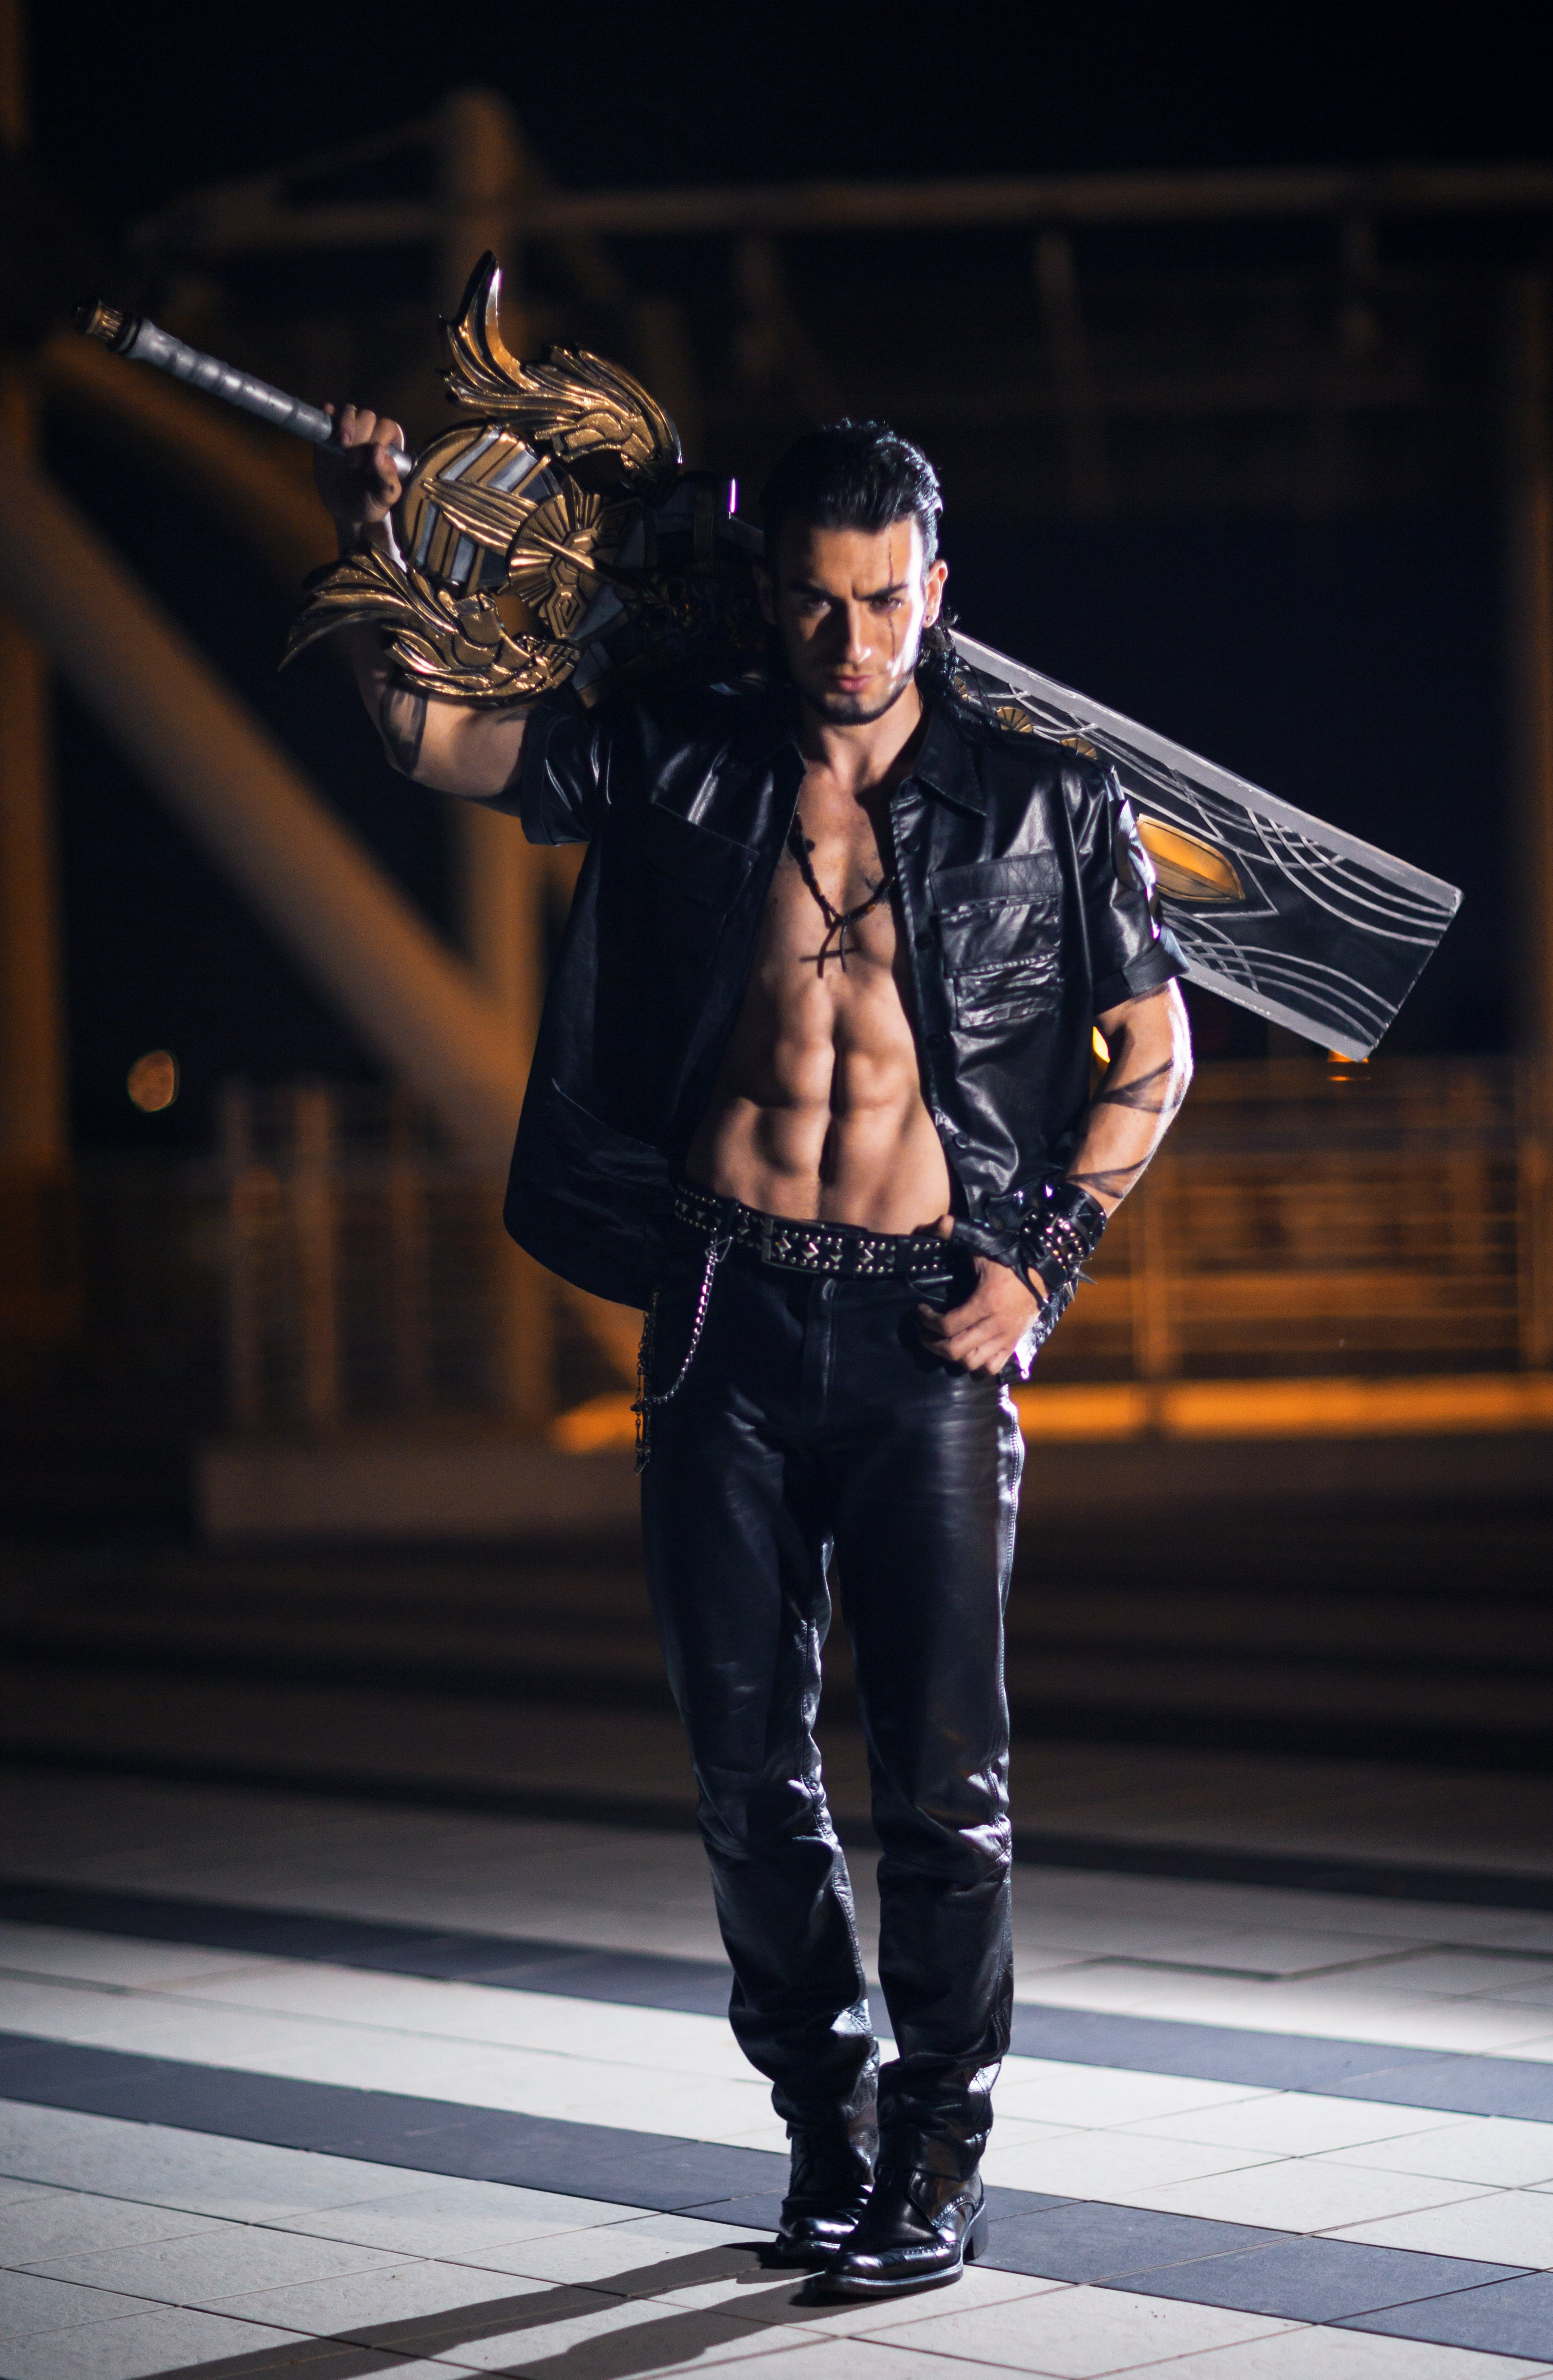 Final Fantasy XV Cosplay Gets It Right